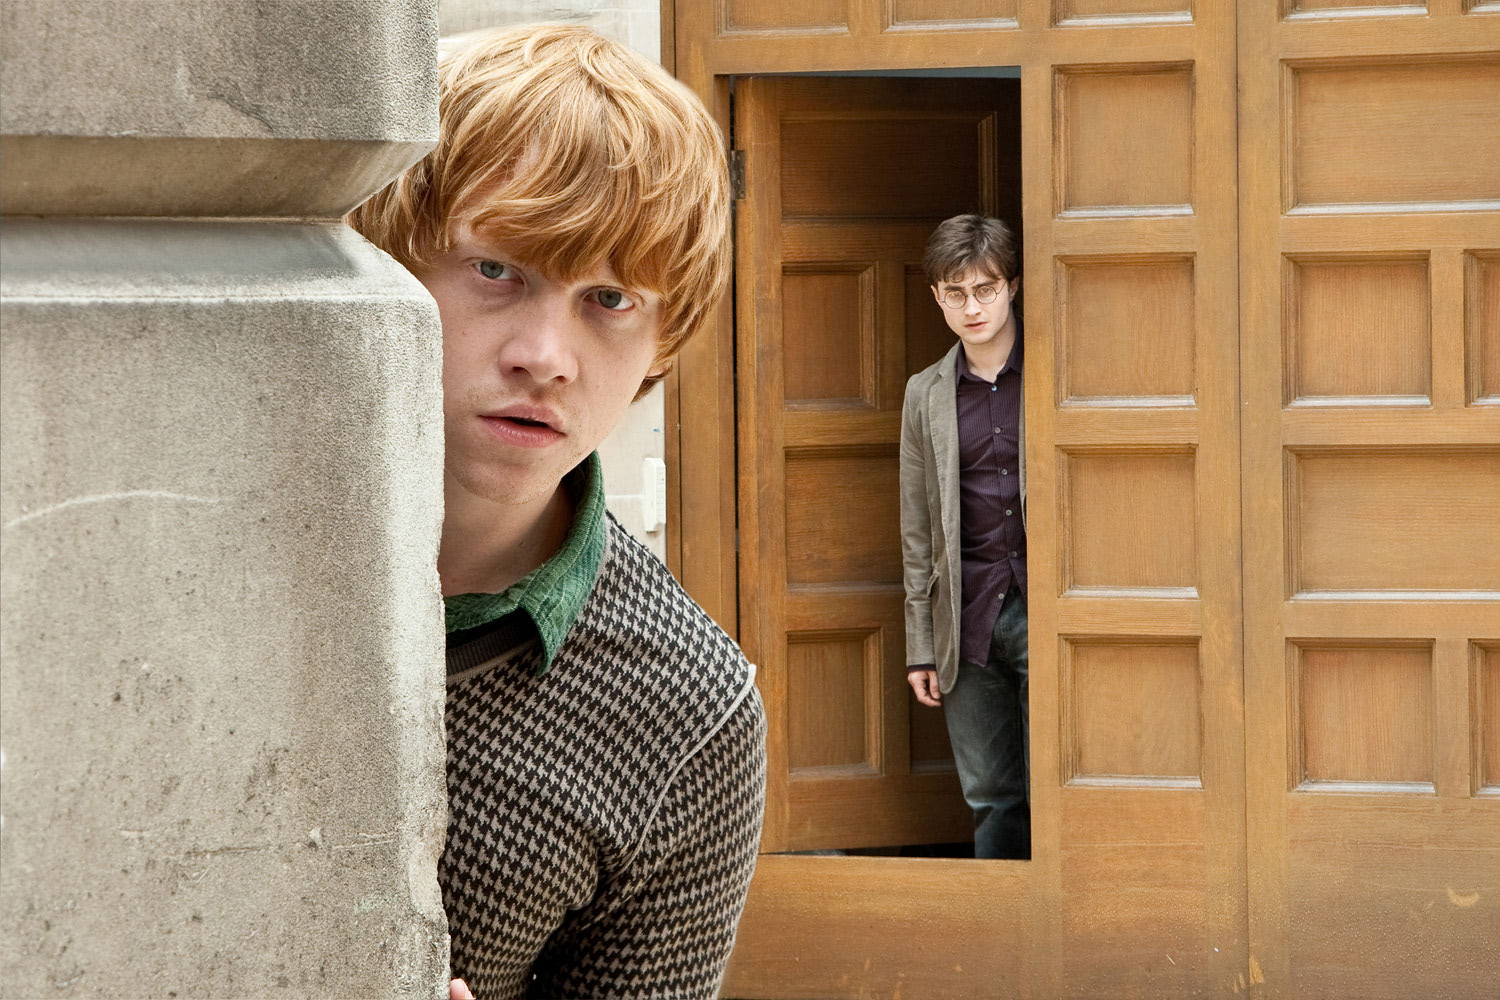 Harry and Ron prepare to enter the Ministry